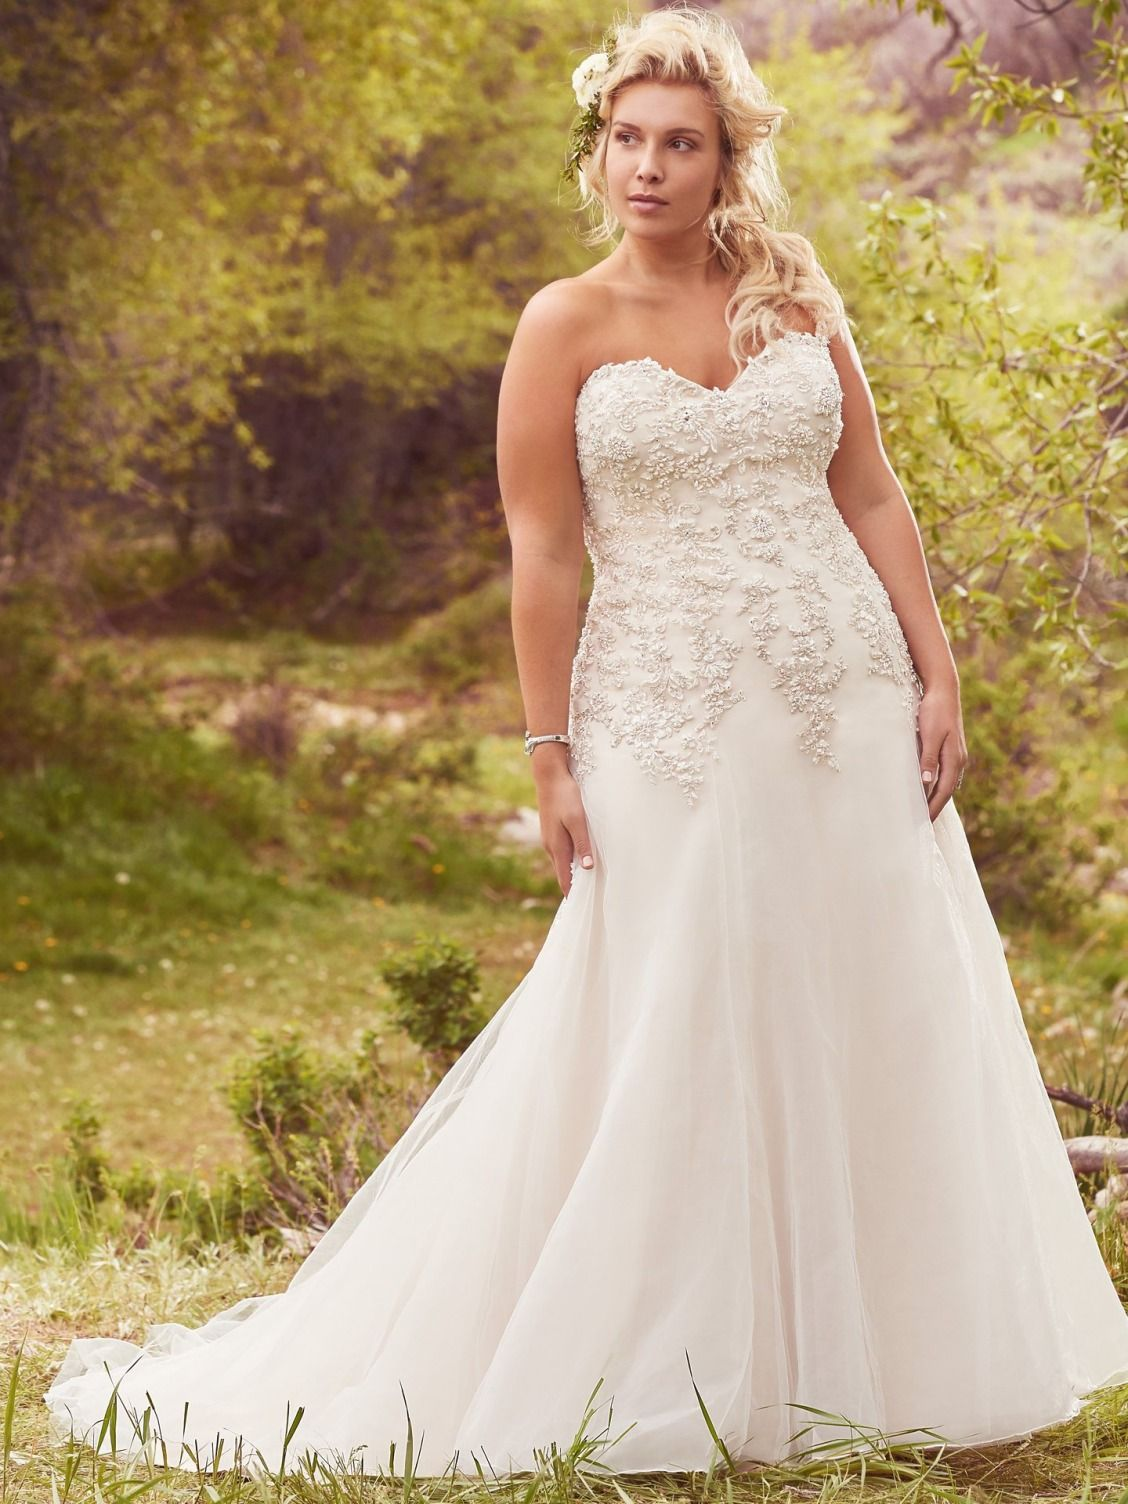 Wedding Dresses Bridal Gowns Wedding Dresses Plus Size Wedding Dresses Maggie Sottero Wedding Dresses